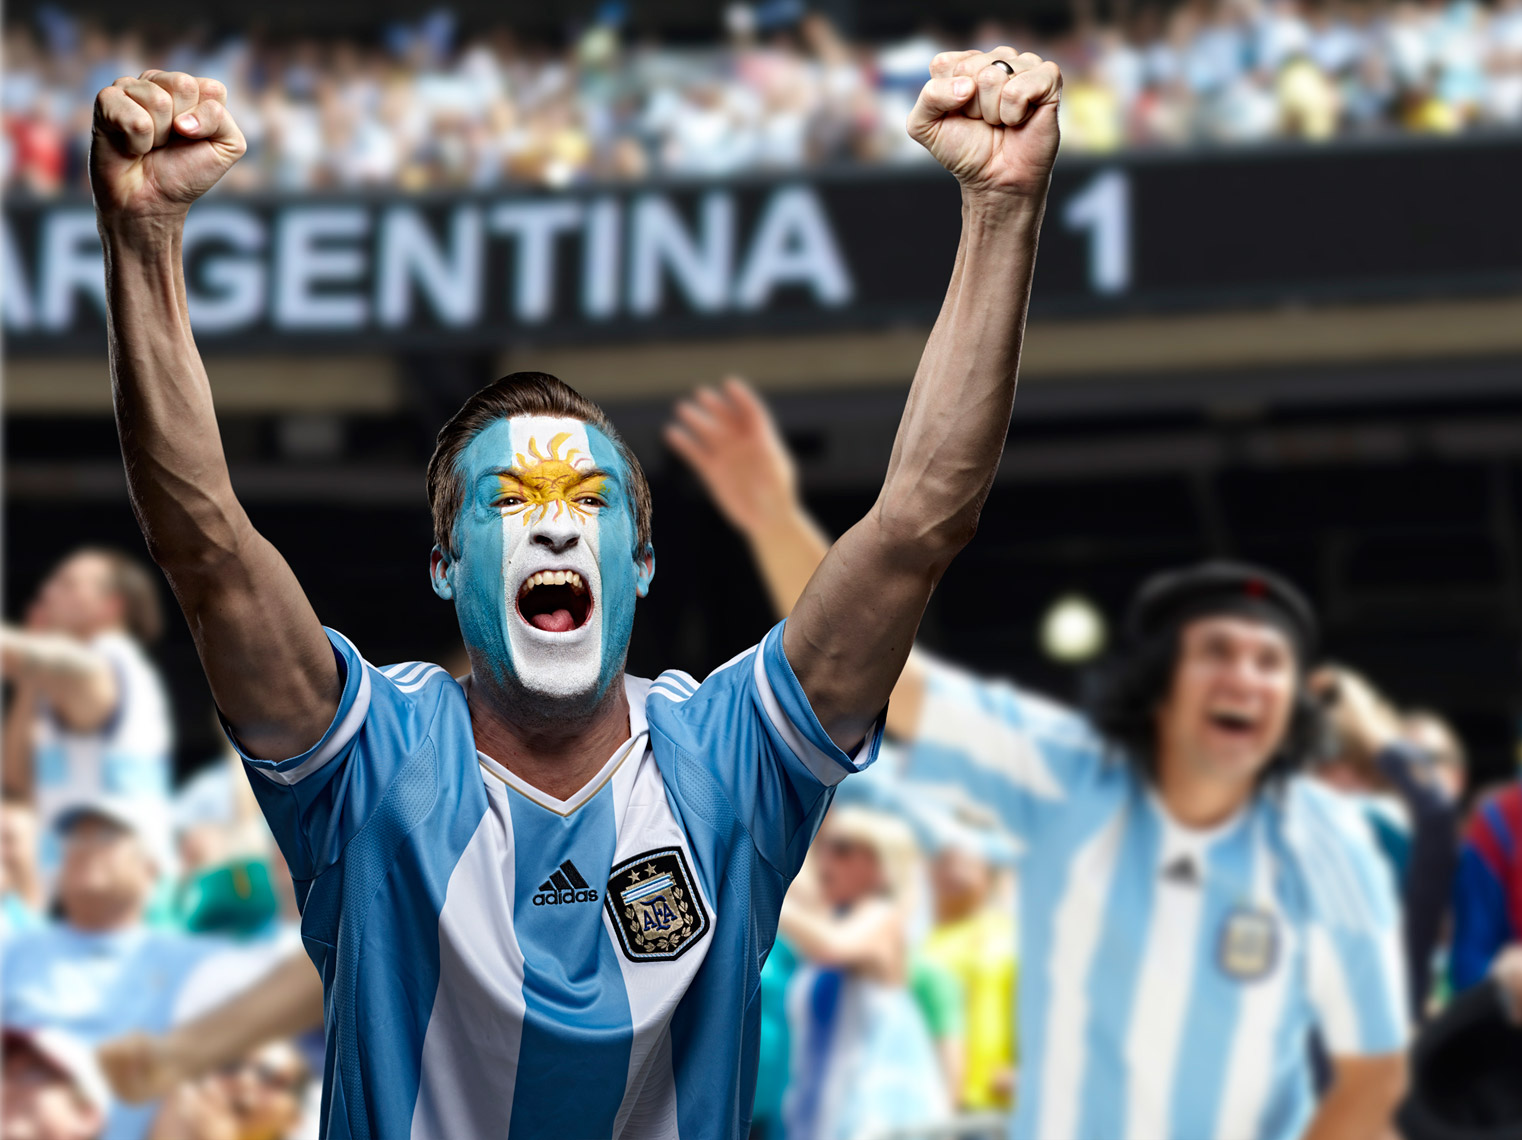 Argentinian Futbol soccer fan face paint photo by Monte Isom